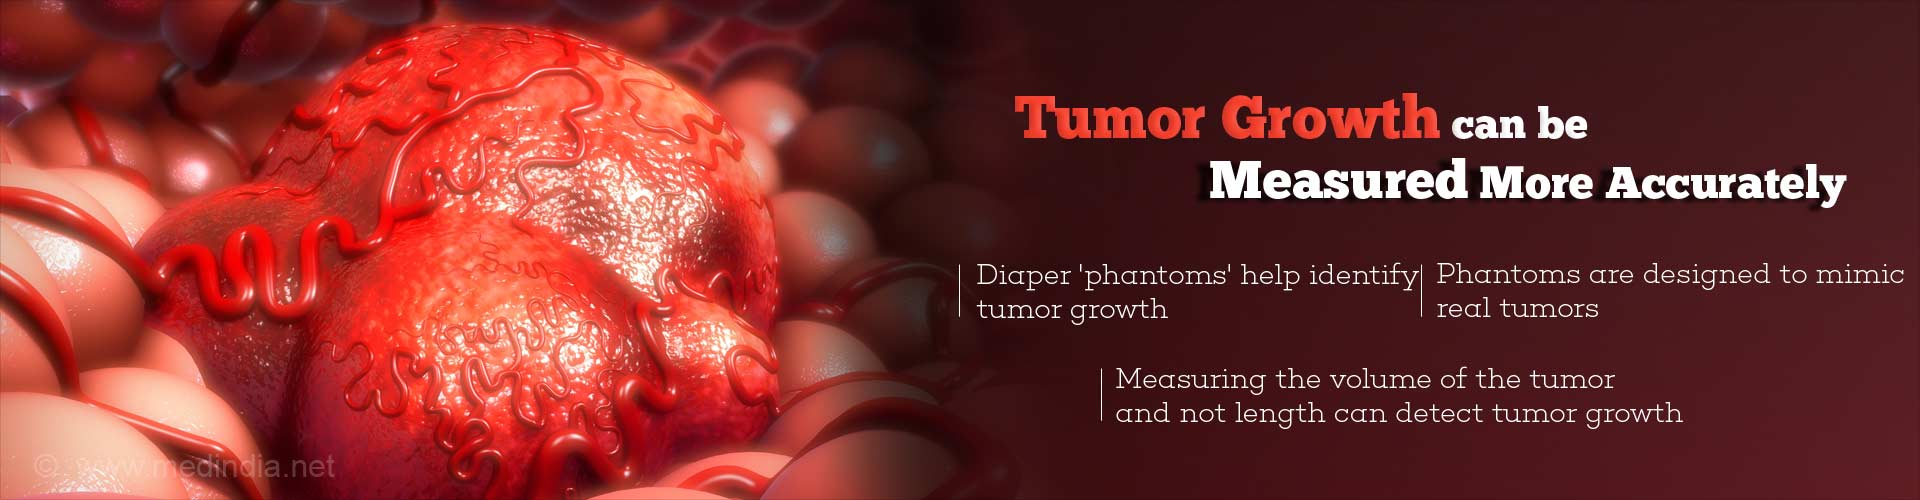 New Approach Can Measure Tumor Growth More Accurately